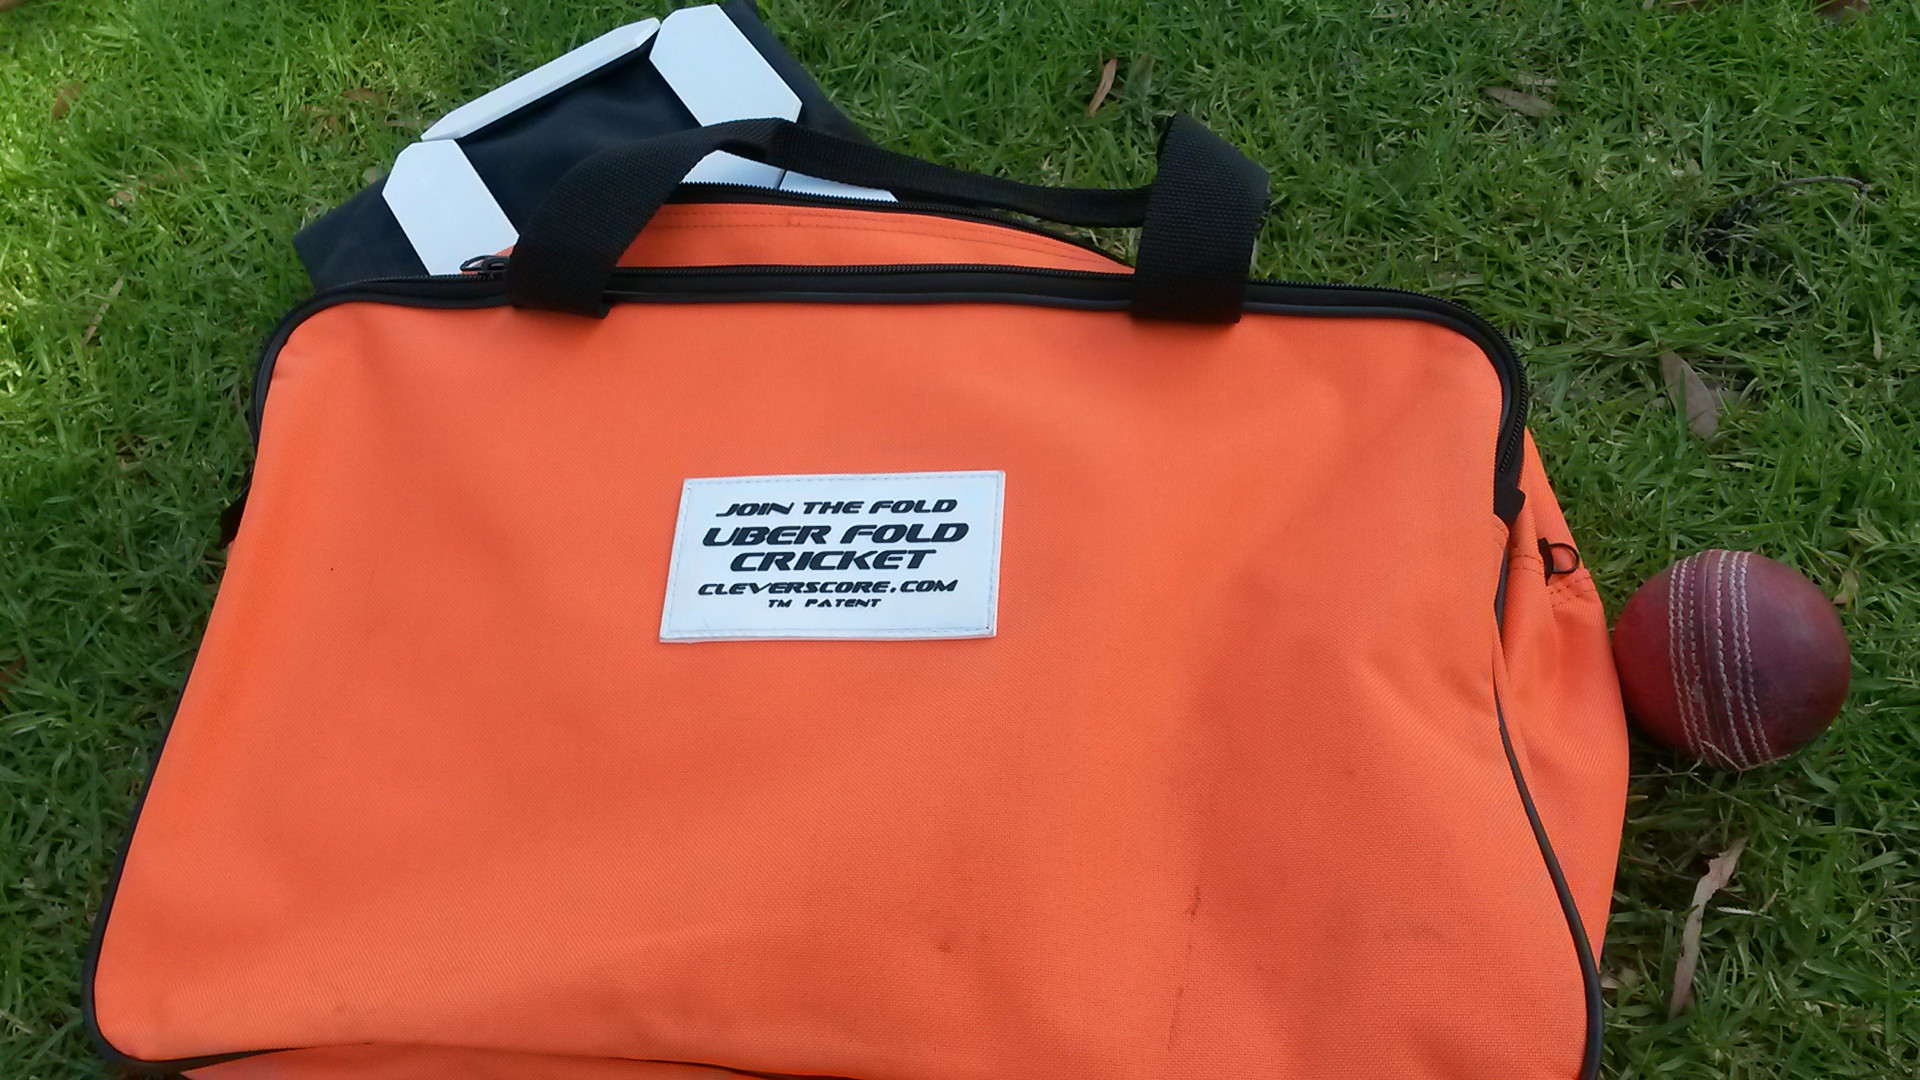 Uber Fold CleverScore Cricket Bag.jpg